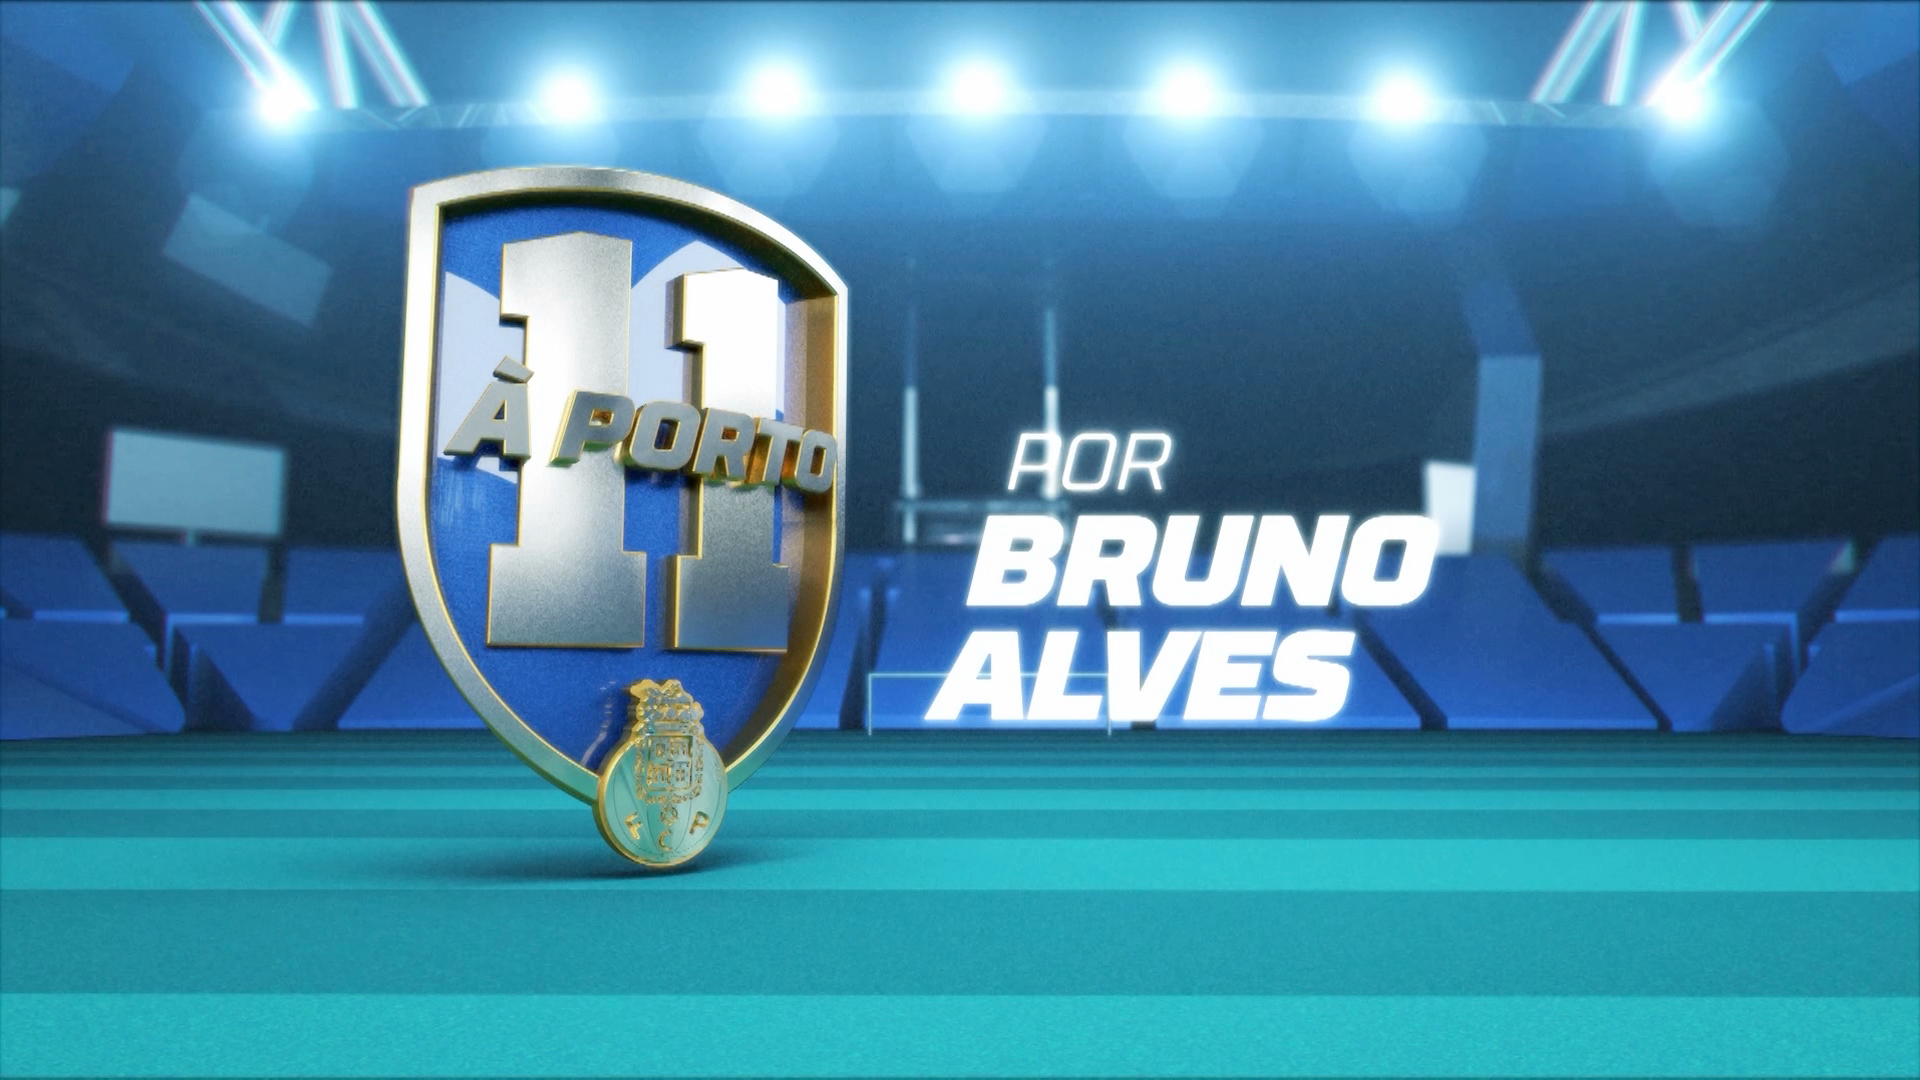 '11 à Porto' Bruno Alves